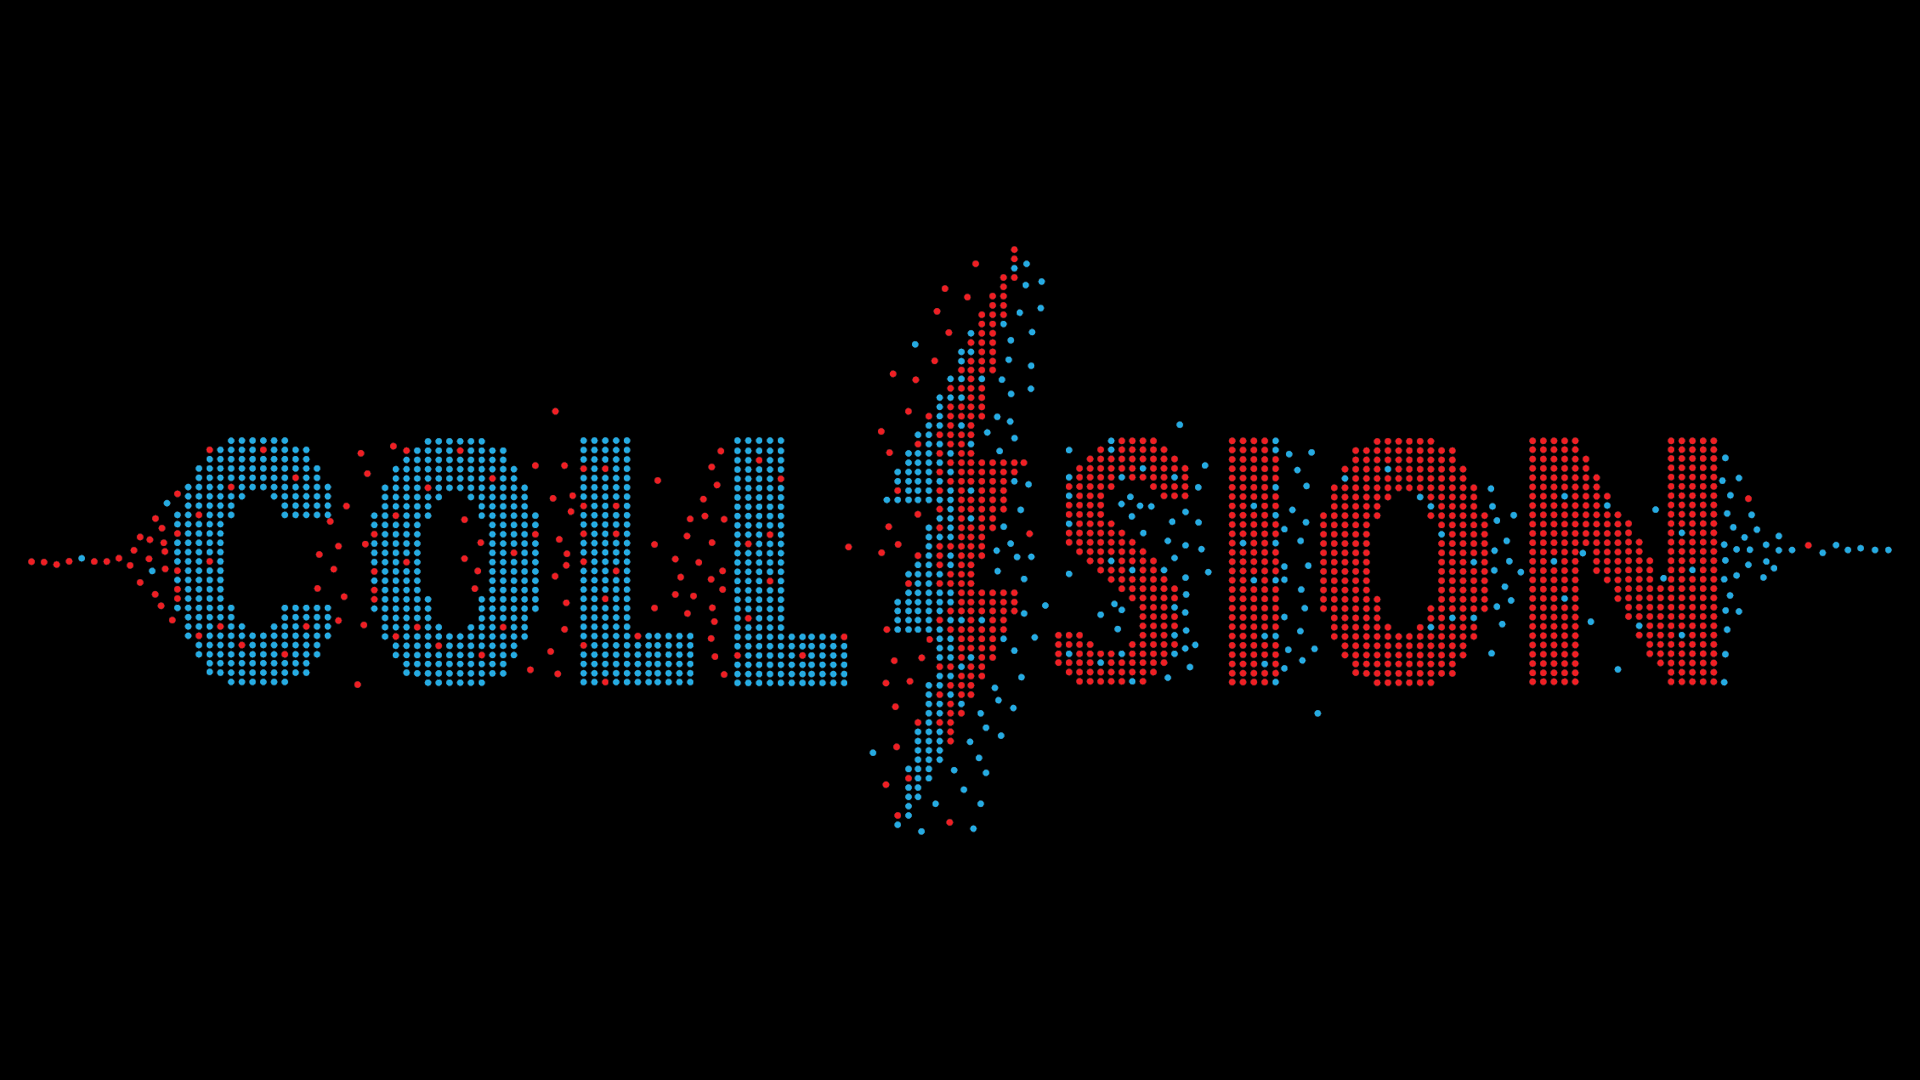 CollisionScreen